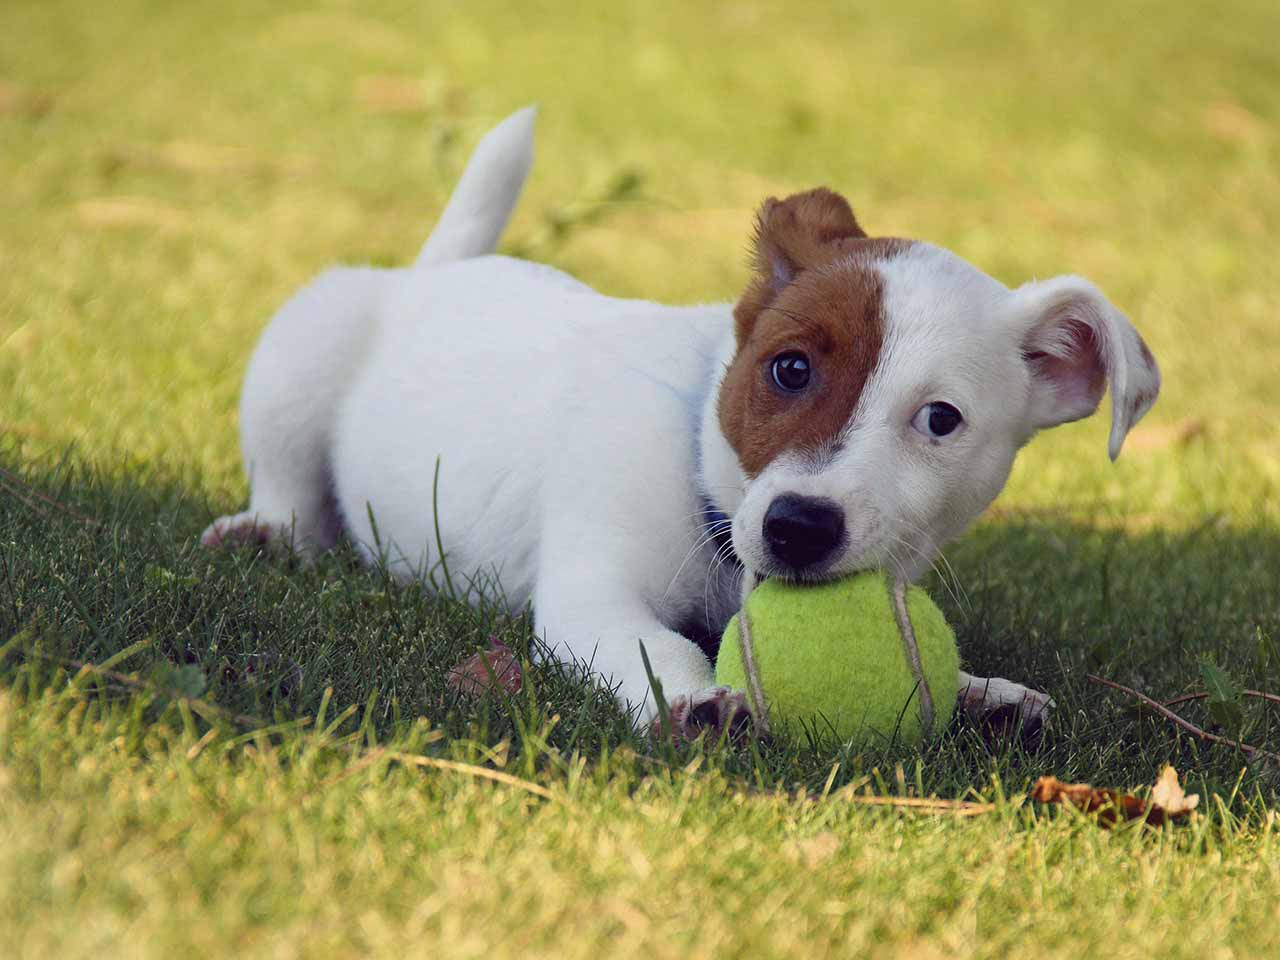 Can Dogs Catch Balls